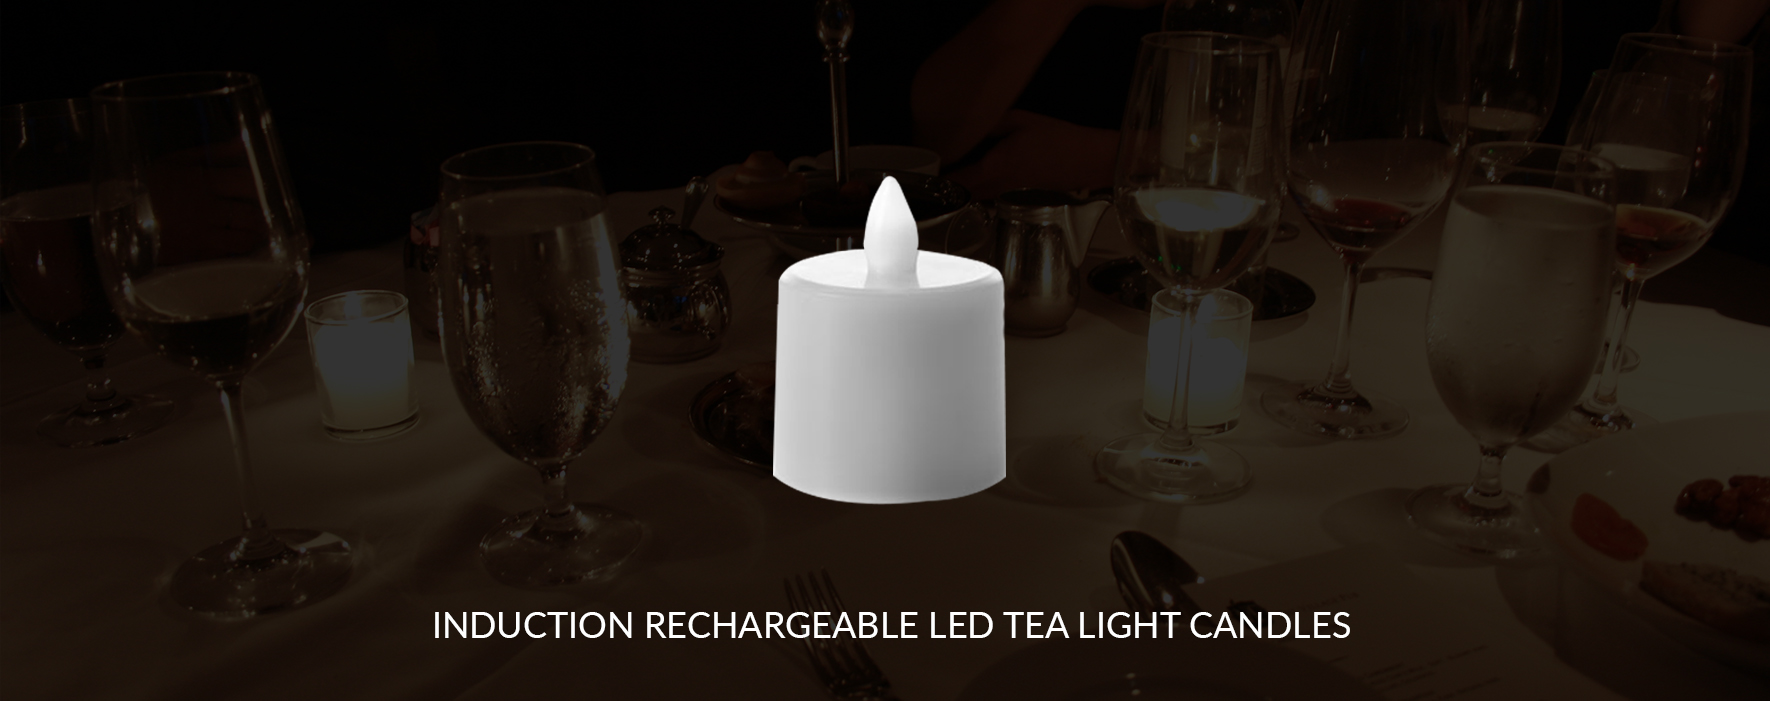 Revola Rechargeable Tea Lights Cordless Rechargeable